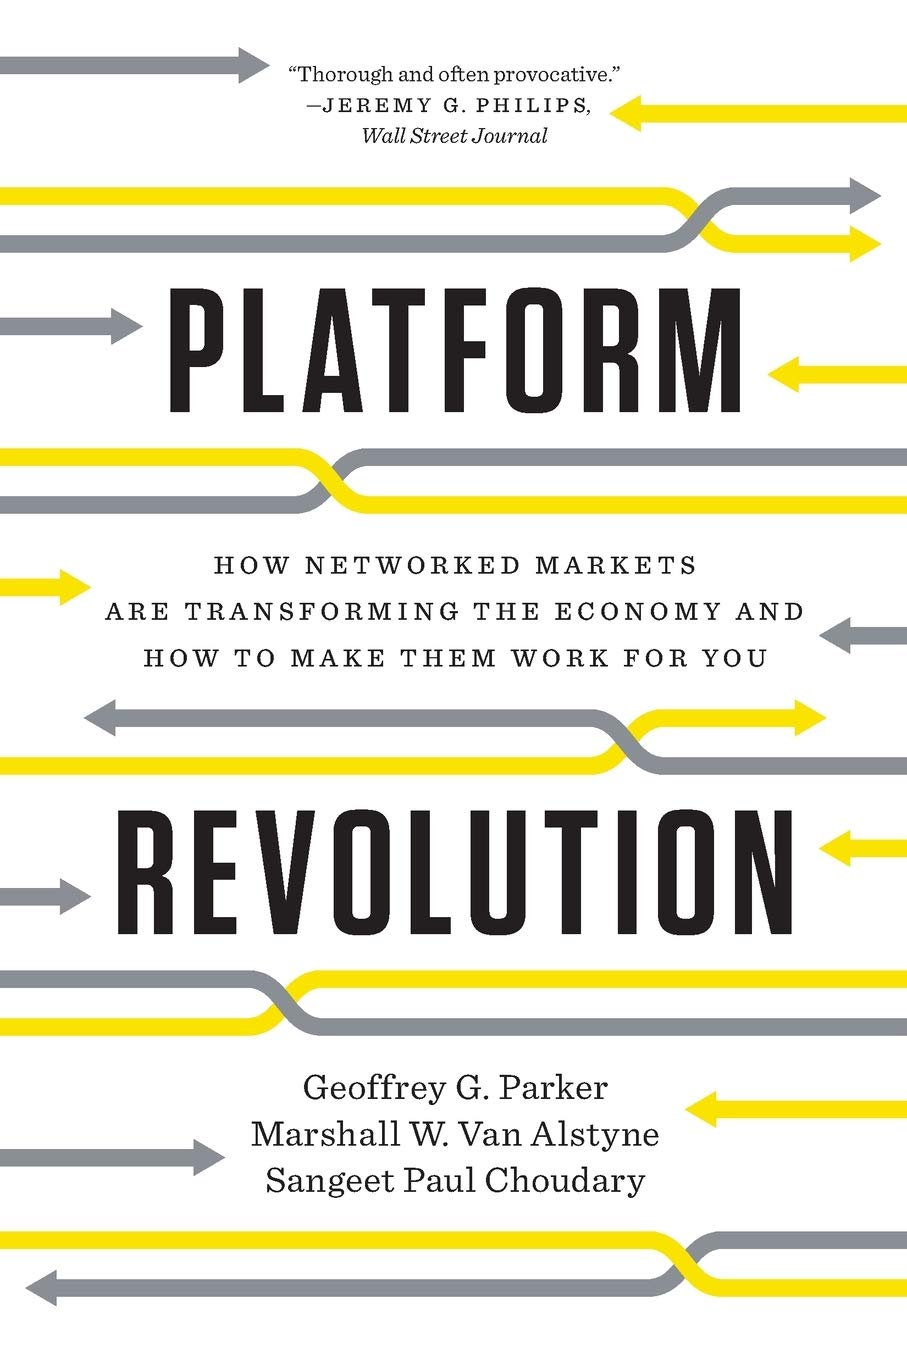 Platform Revolution: How Networked Markets Are Transforming the Economyand How to Make Them Work for You: Amazon.es: Parker G. Geoffrey, Parker G. Geoffrey: Libros en idiomas extranjeros